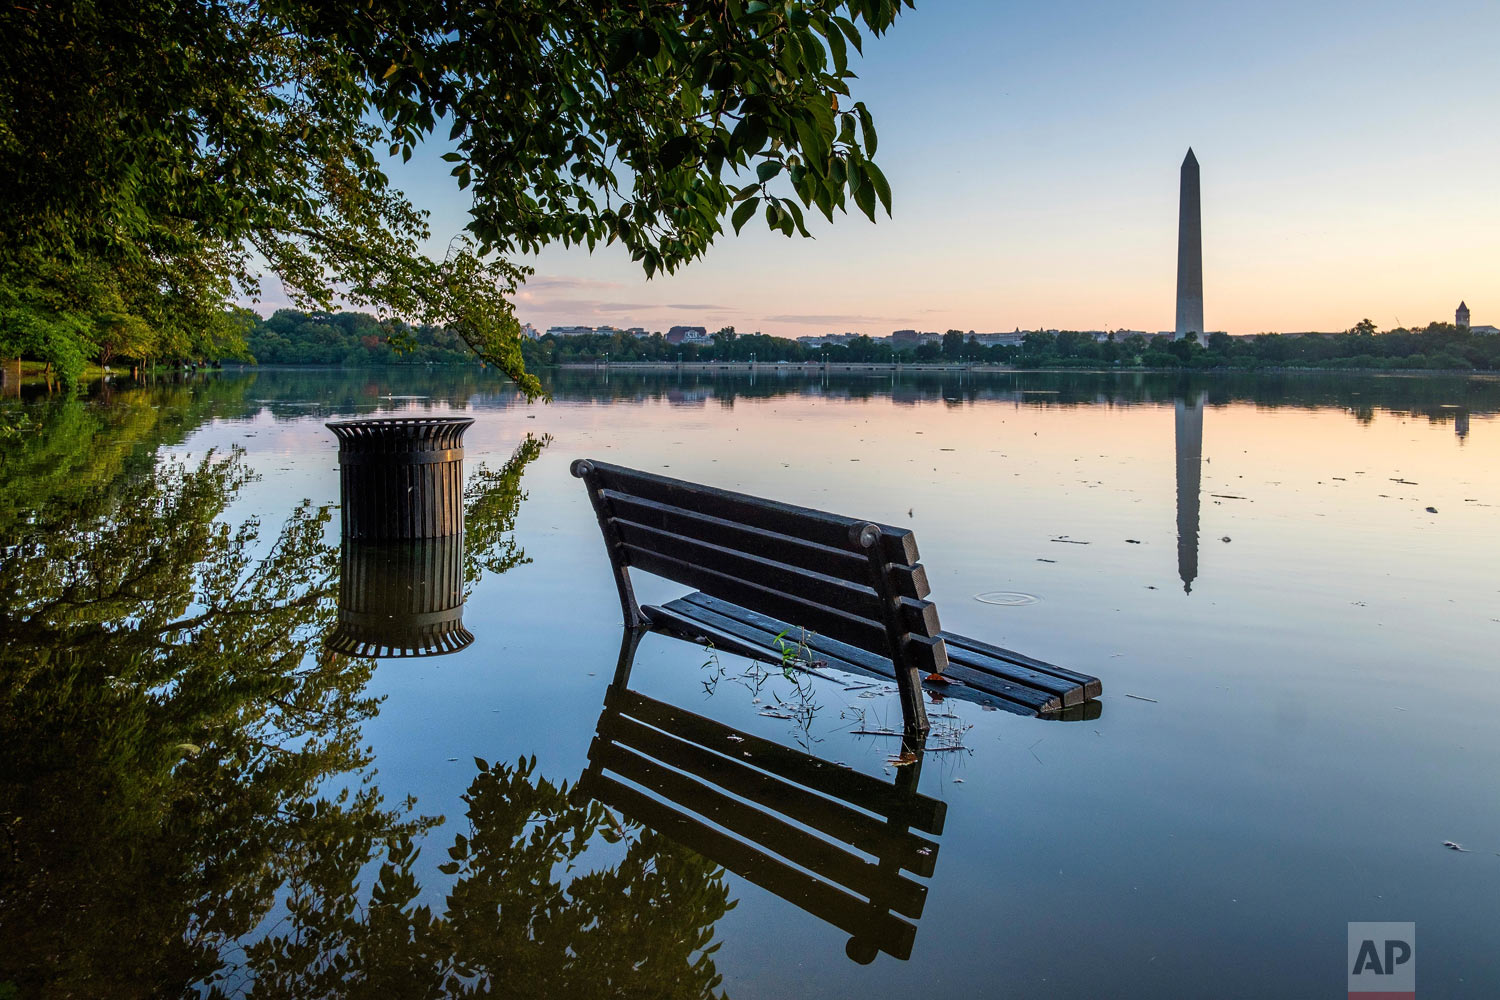 A bench is surrounded by water after recent heavy rains caused the Tidal Basin in Washington to overflow its banks Wednesday, Aug. 22, 2018. (AP Photo/J. David Ake)